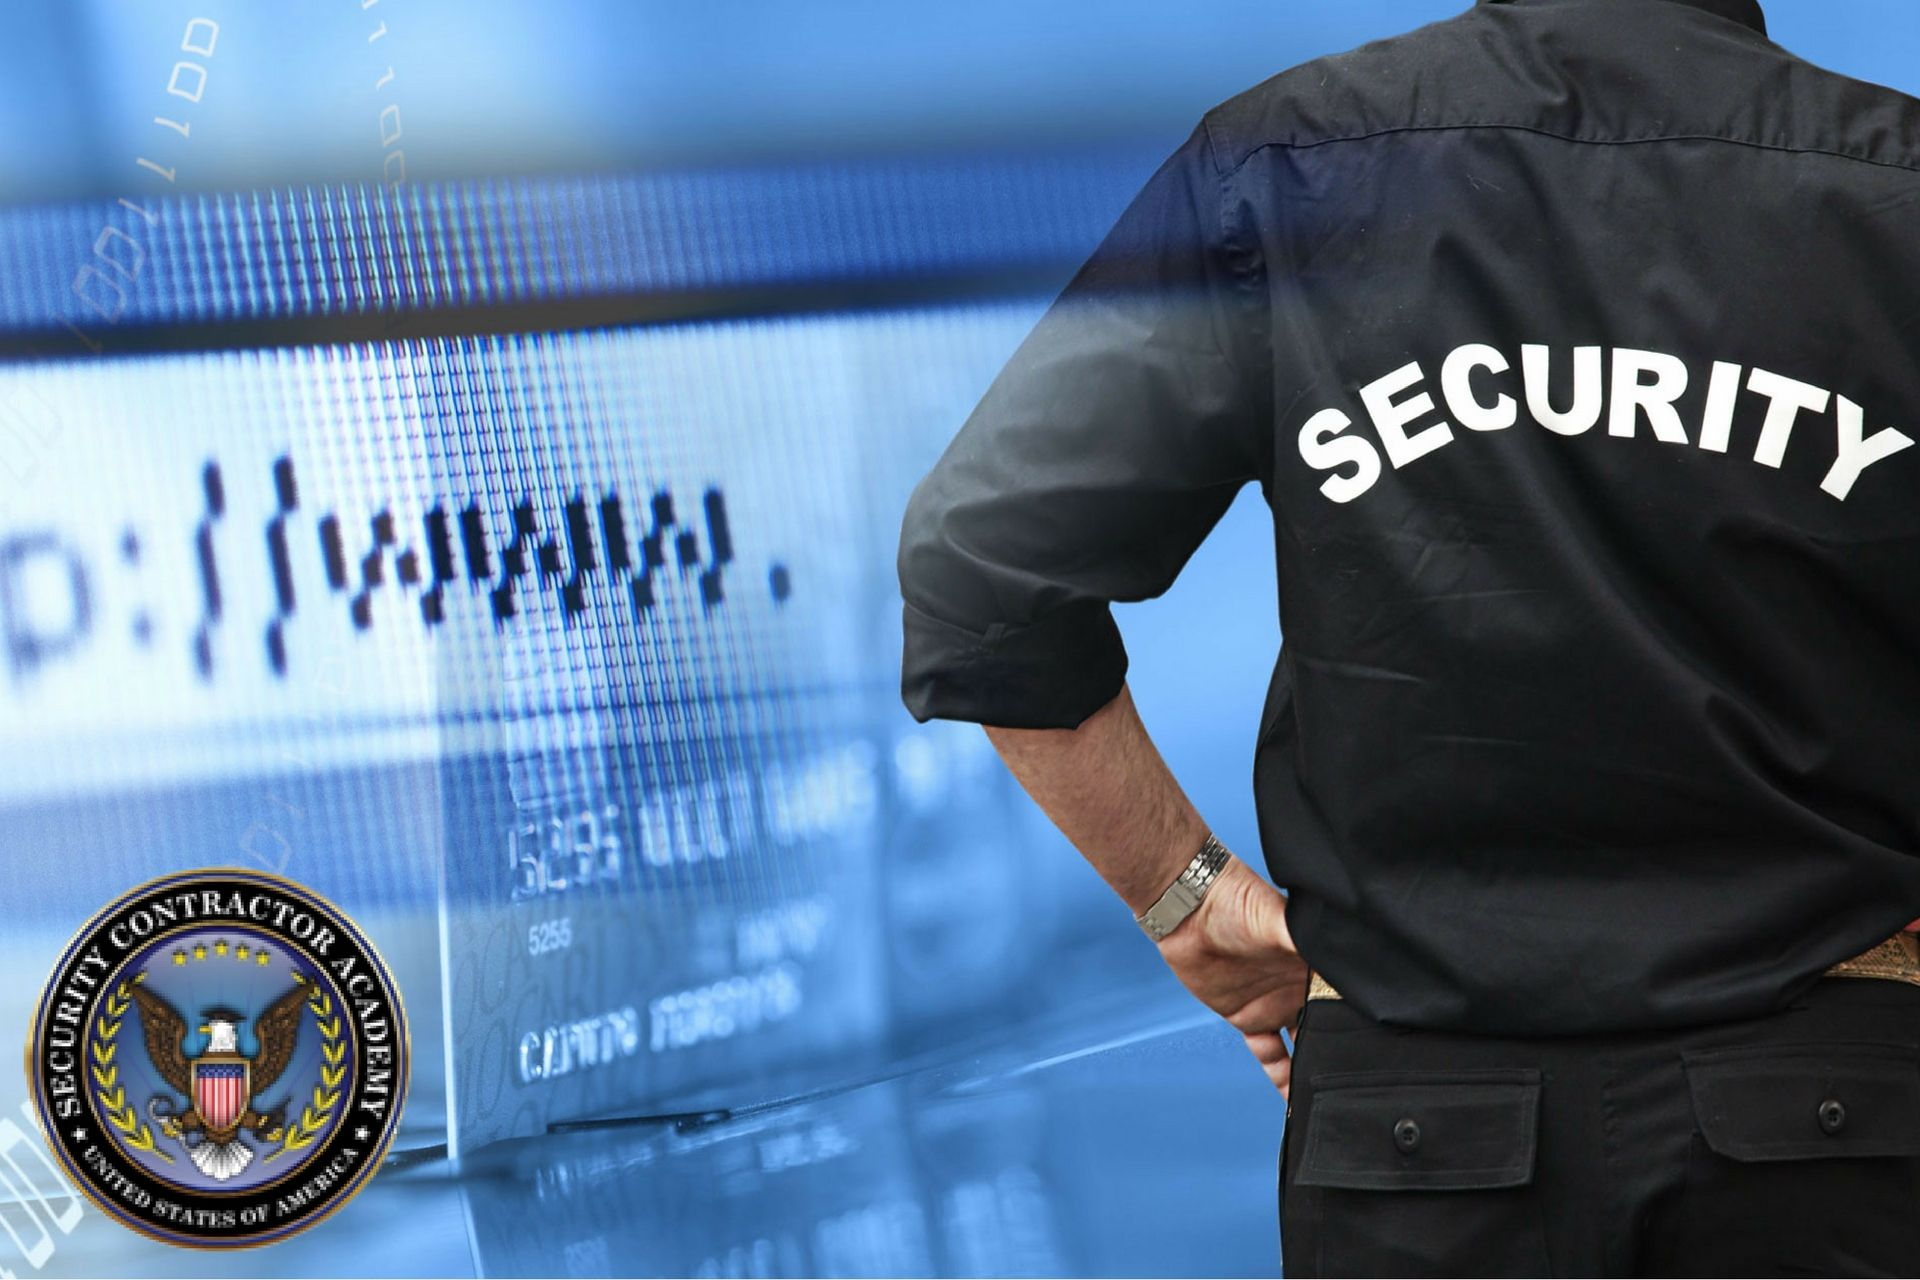 Do you want to get hired for overseas security contractor